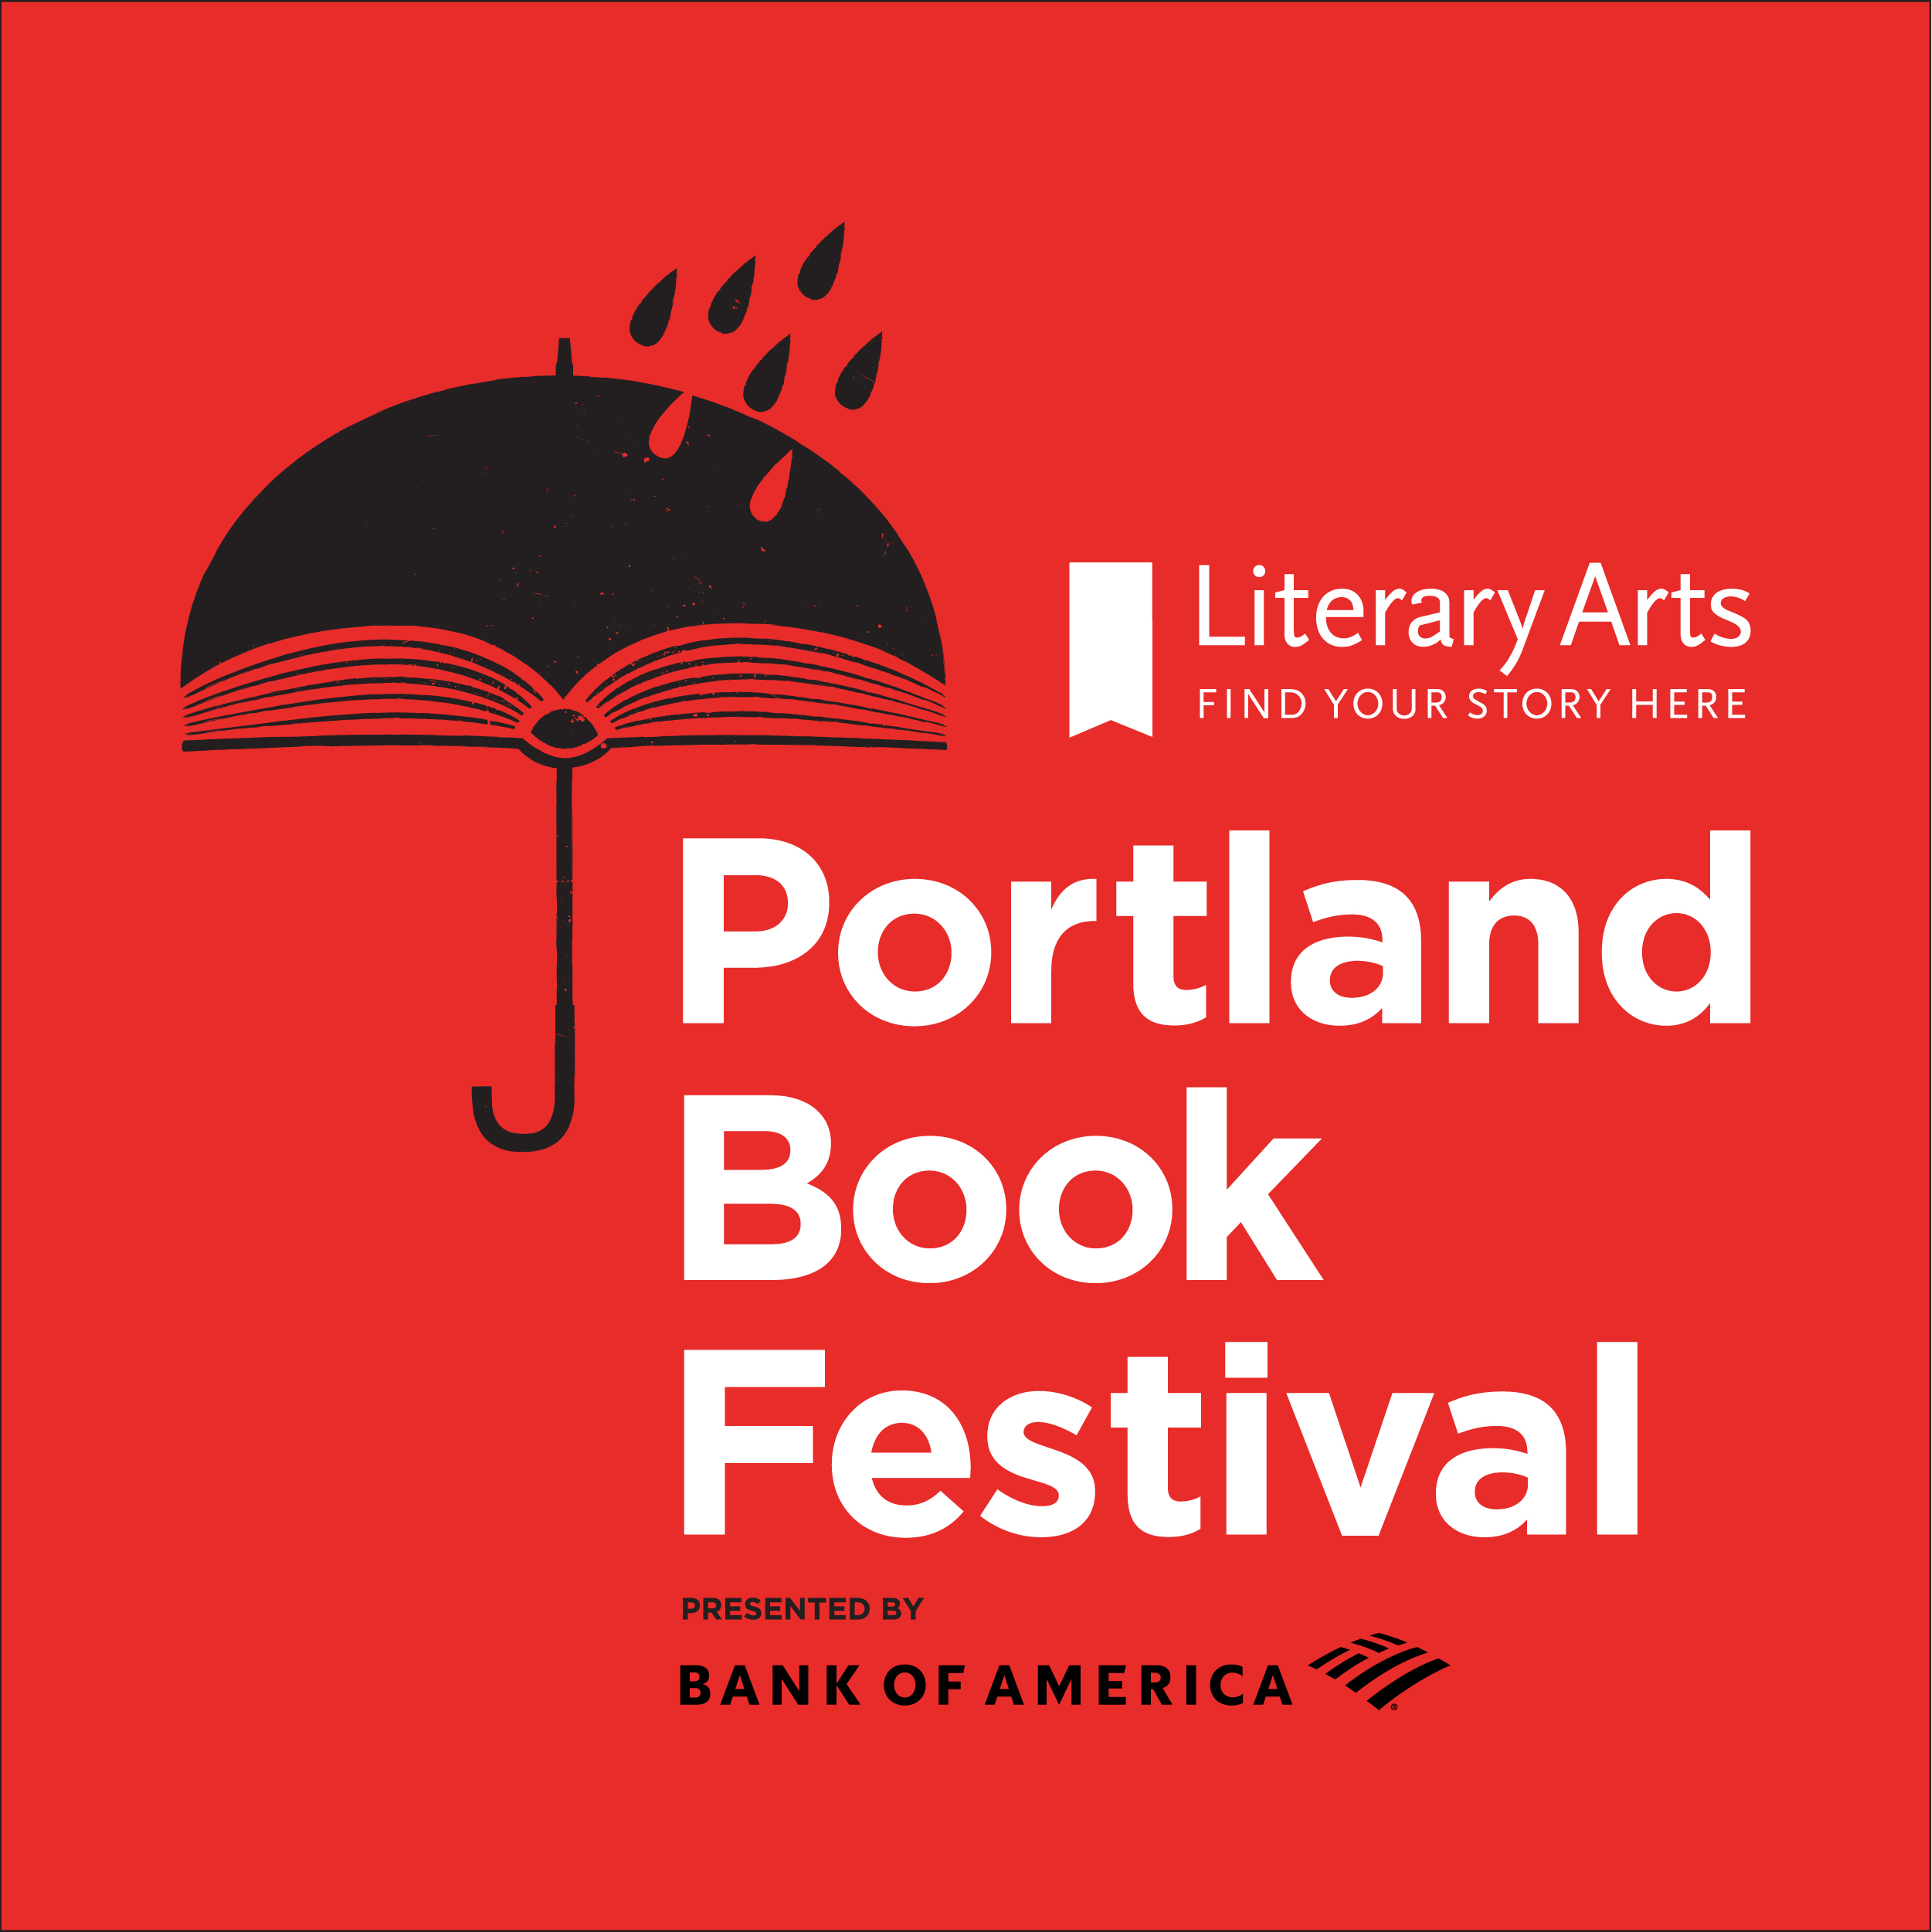 Bank of America returns as the Title Sponsor for the Portland Book Festival in 2019